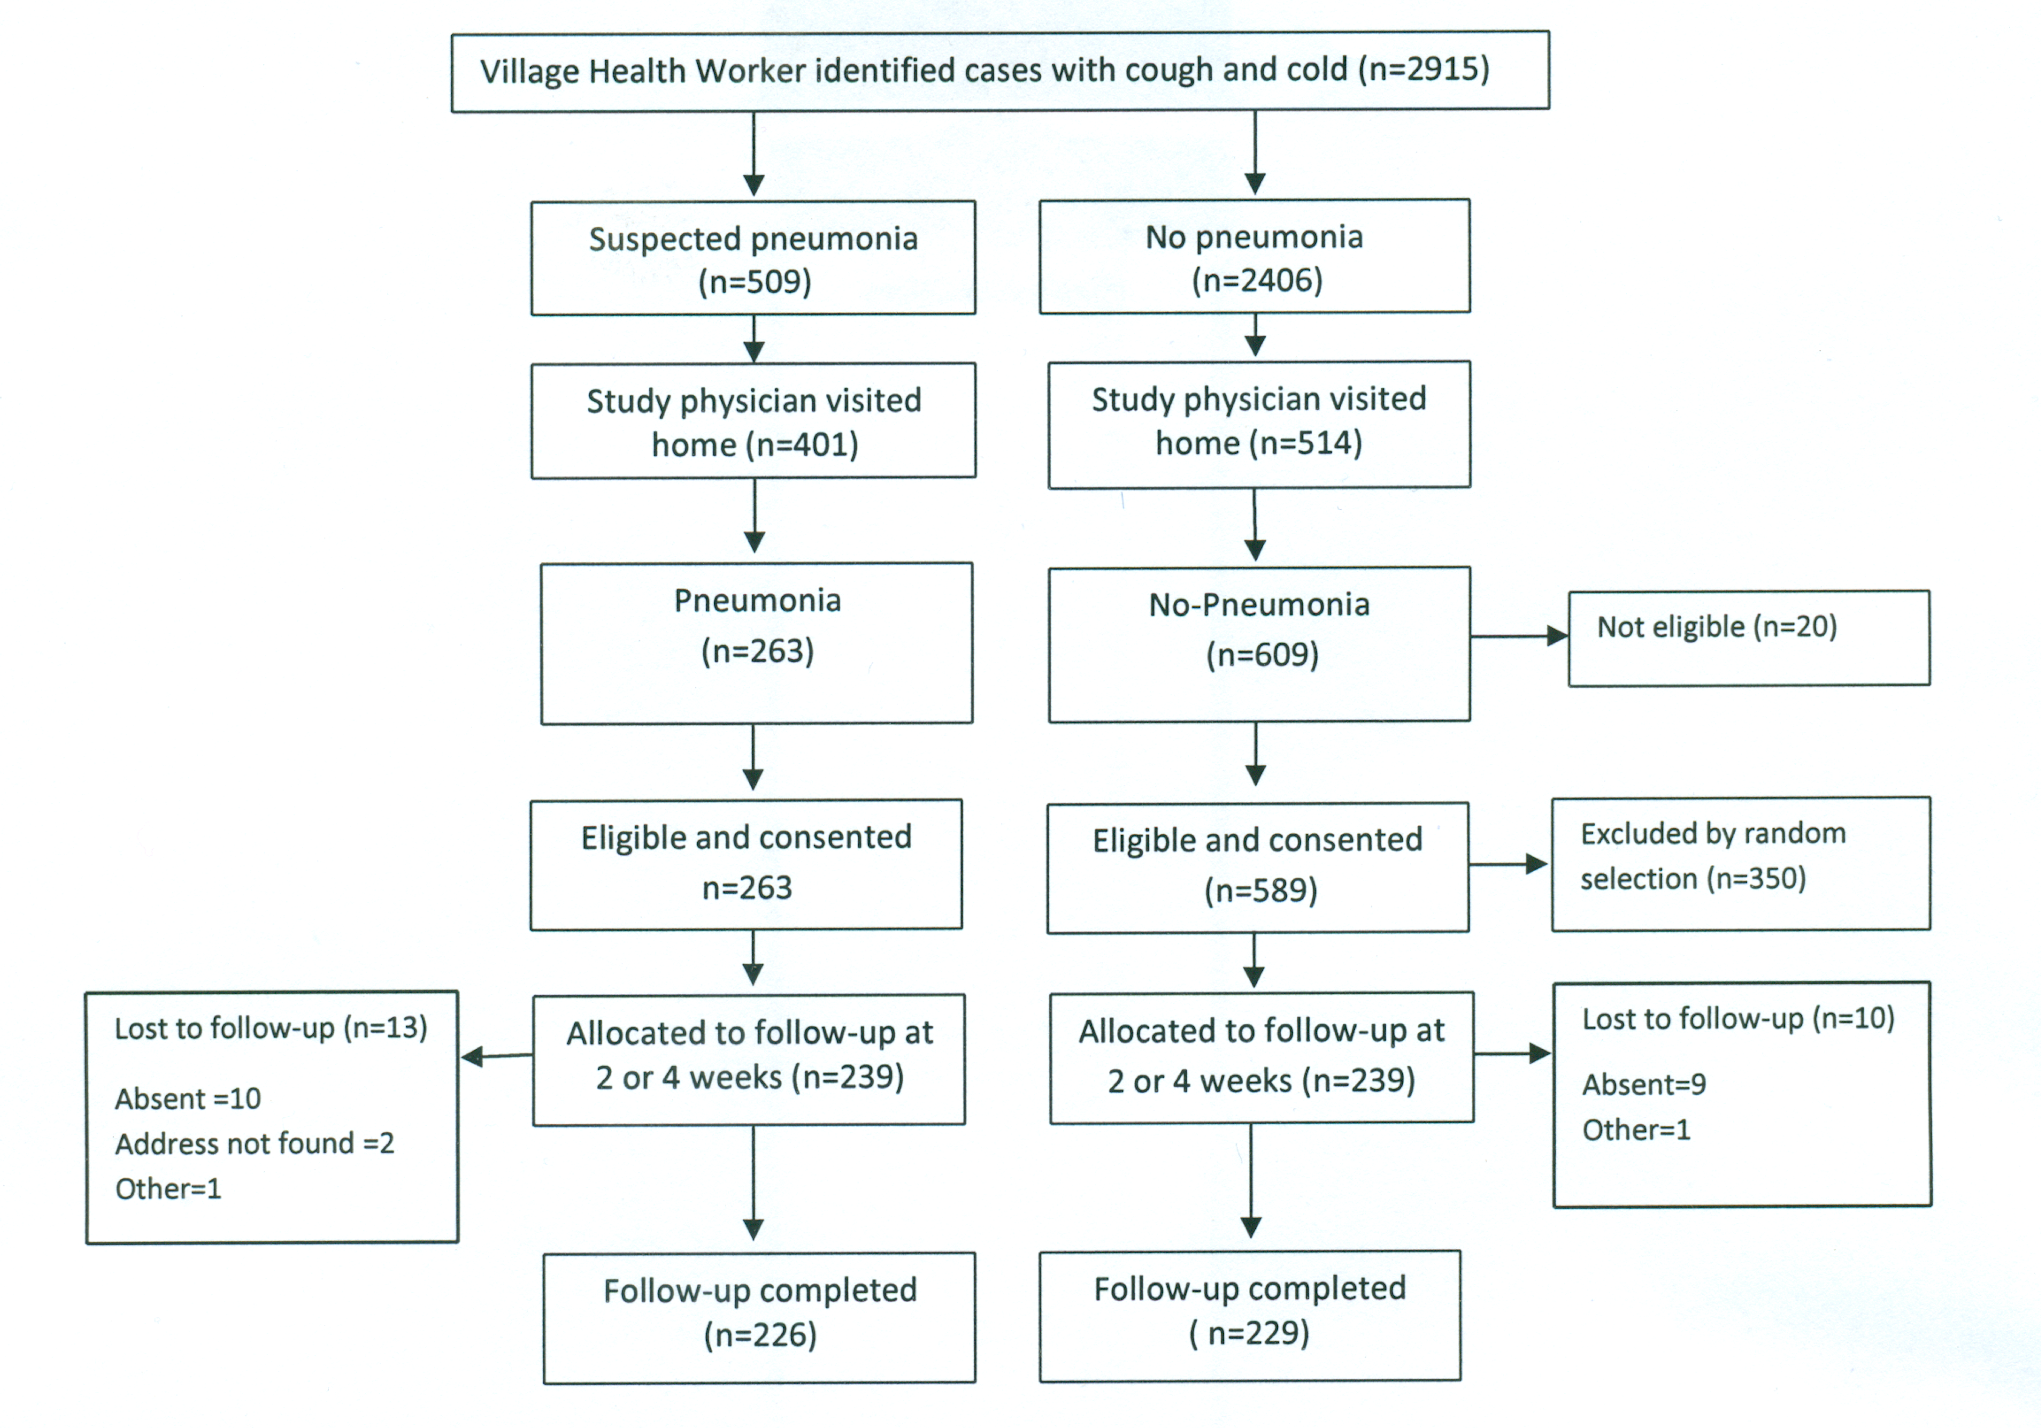 Bangladesh rural site—flowchart of selection of pneumonia and no-pneumonia cases in the rural setting.